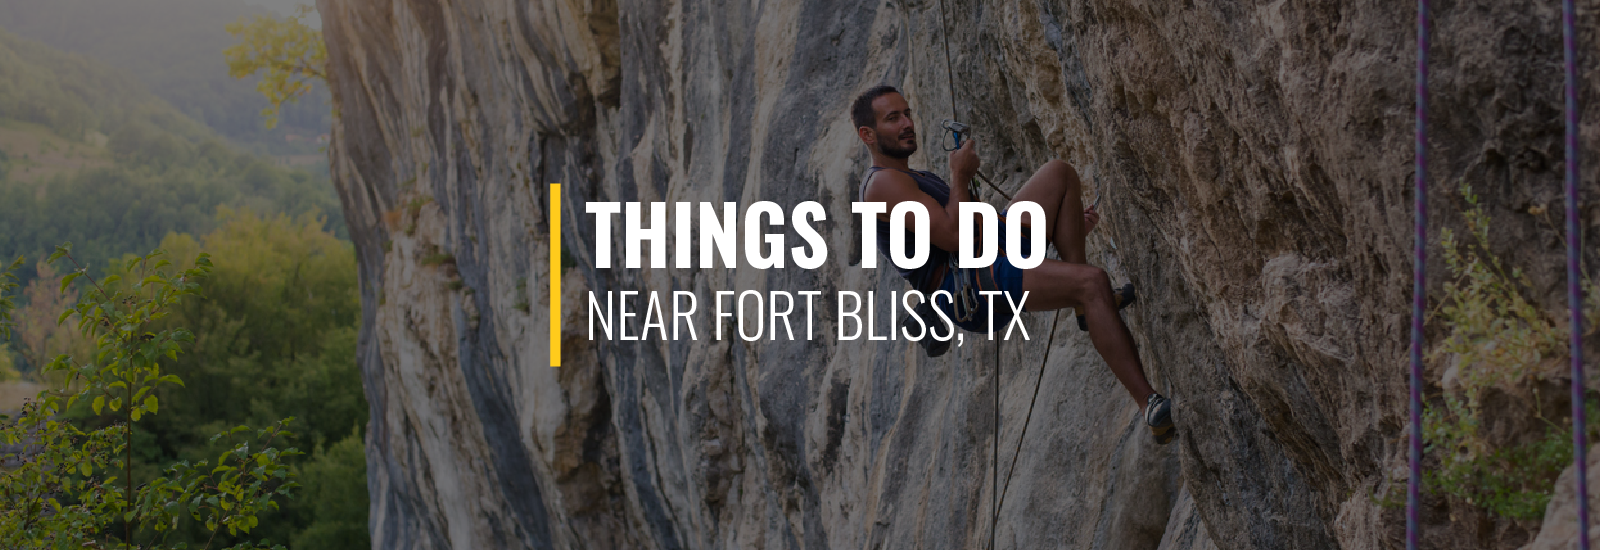 Things to Do on Fort Bliss